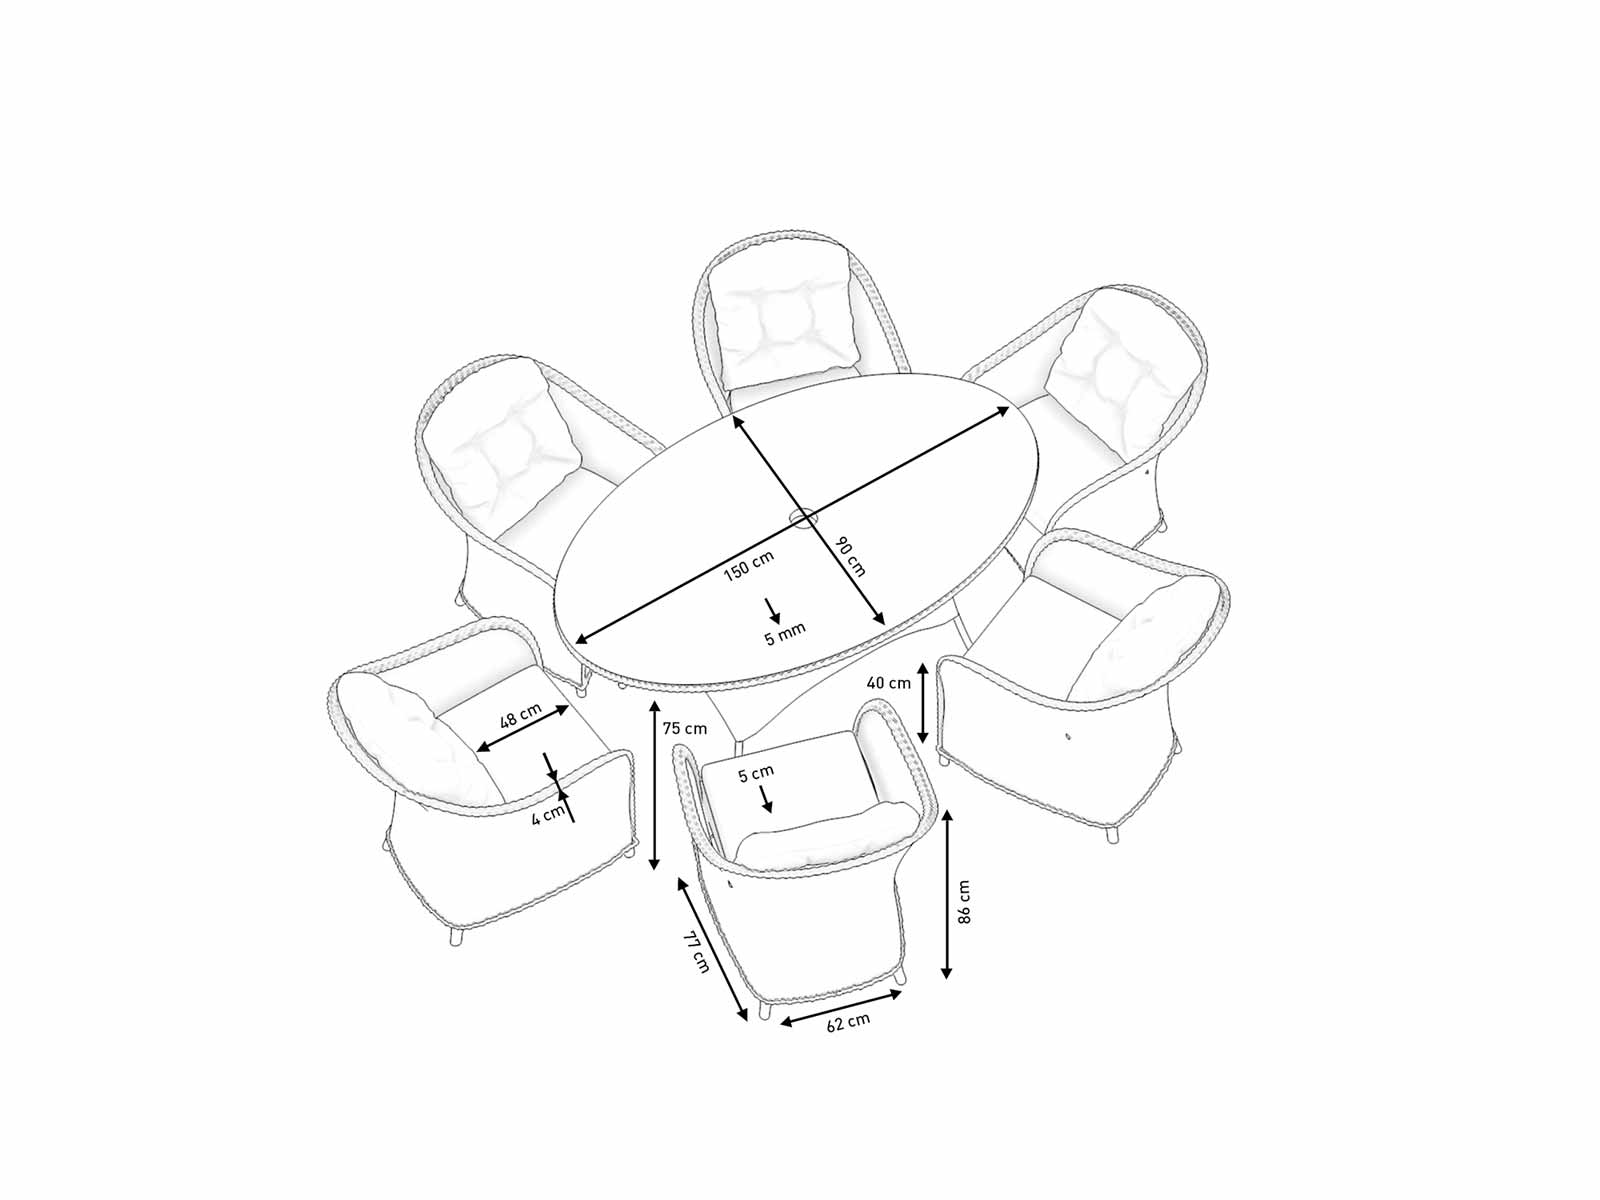 Product details and sketch